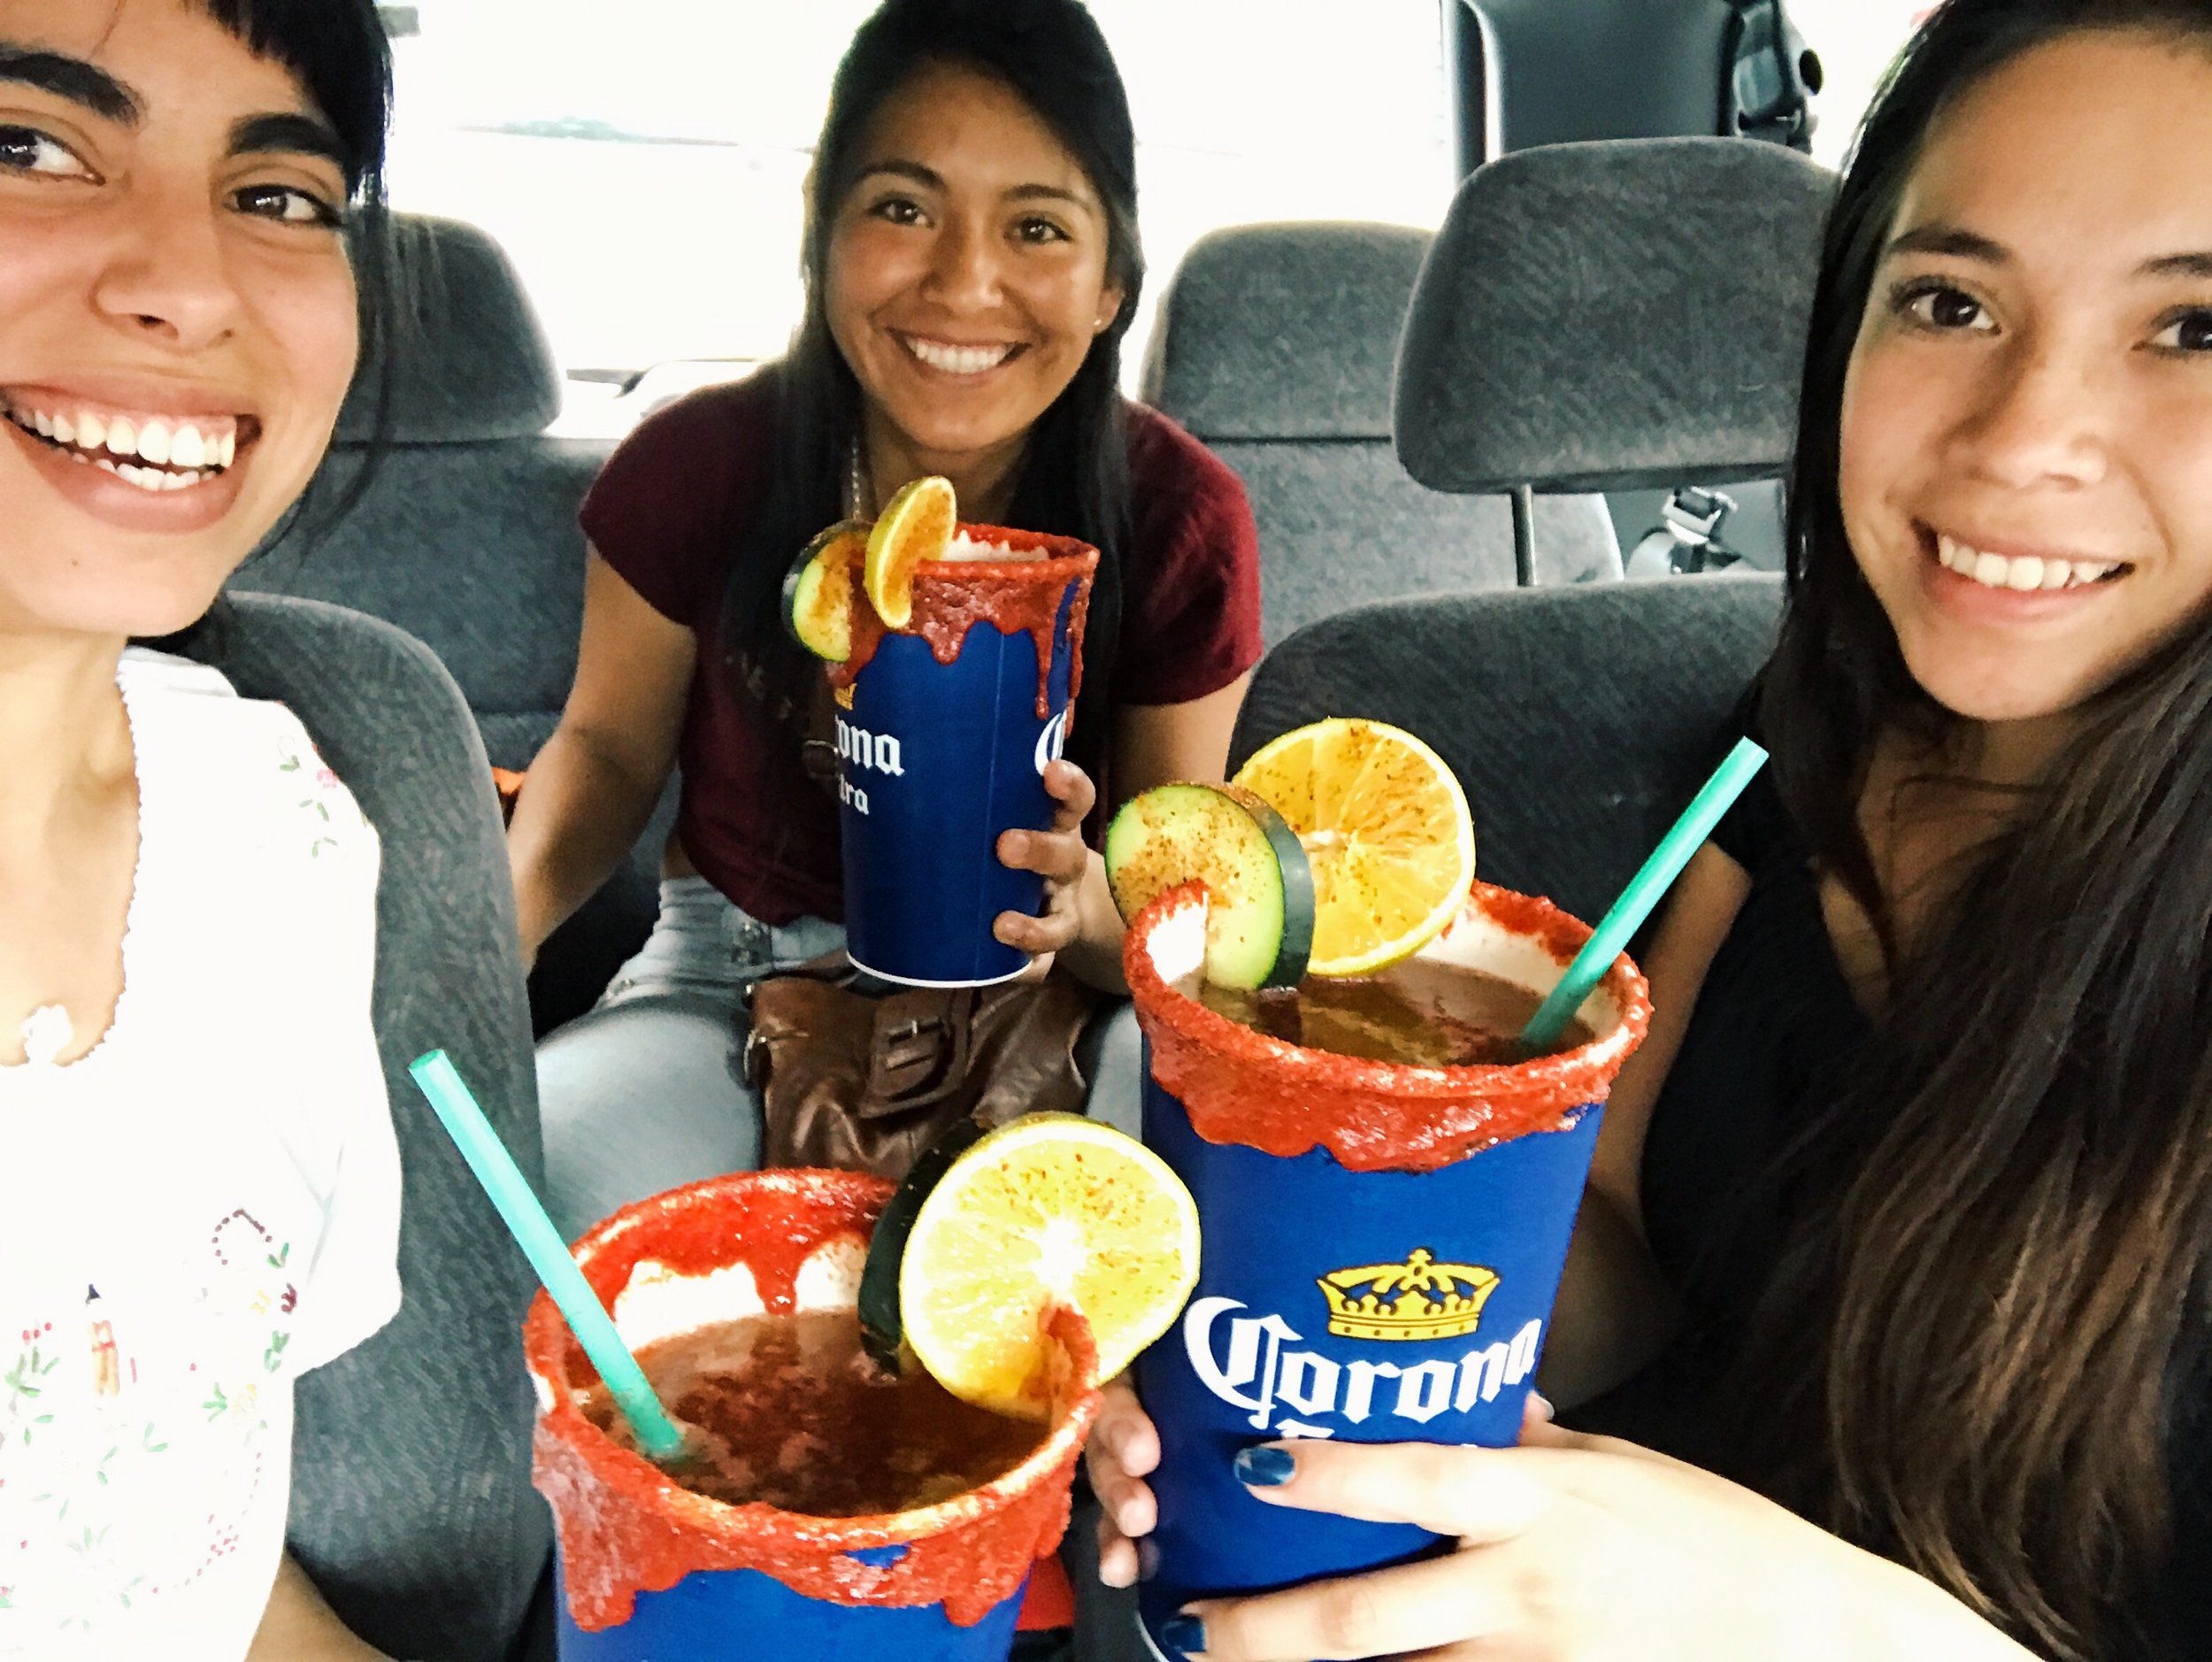 DESSERT!  Micheladas      with my cousins! It is beer with tamarind flavoring and a candy paste and chili ring... mmmm!